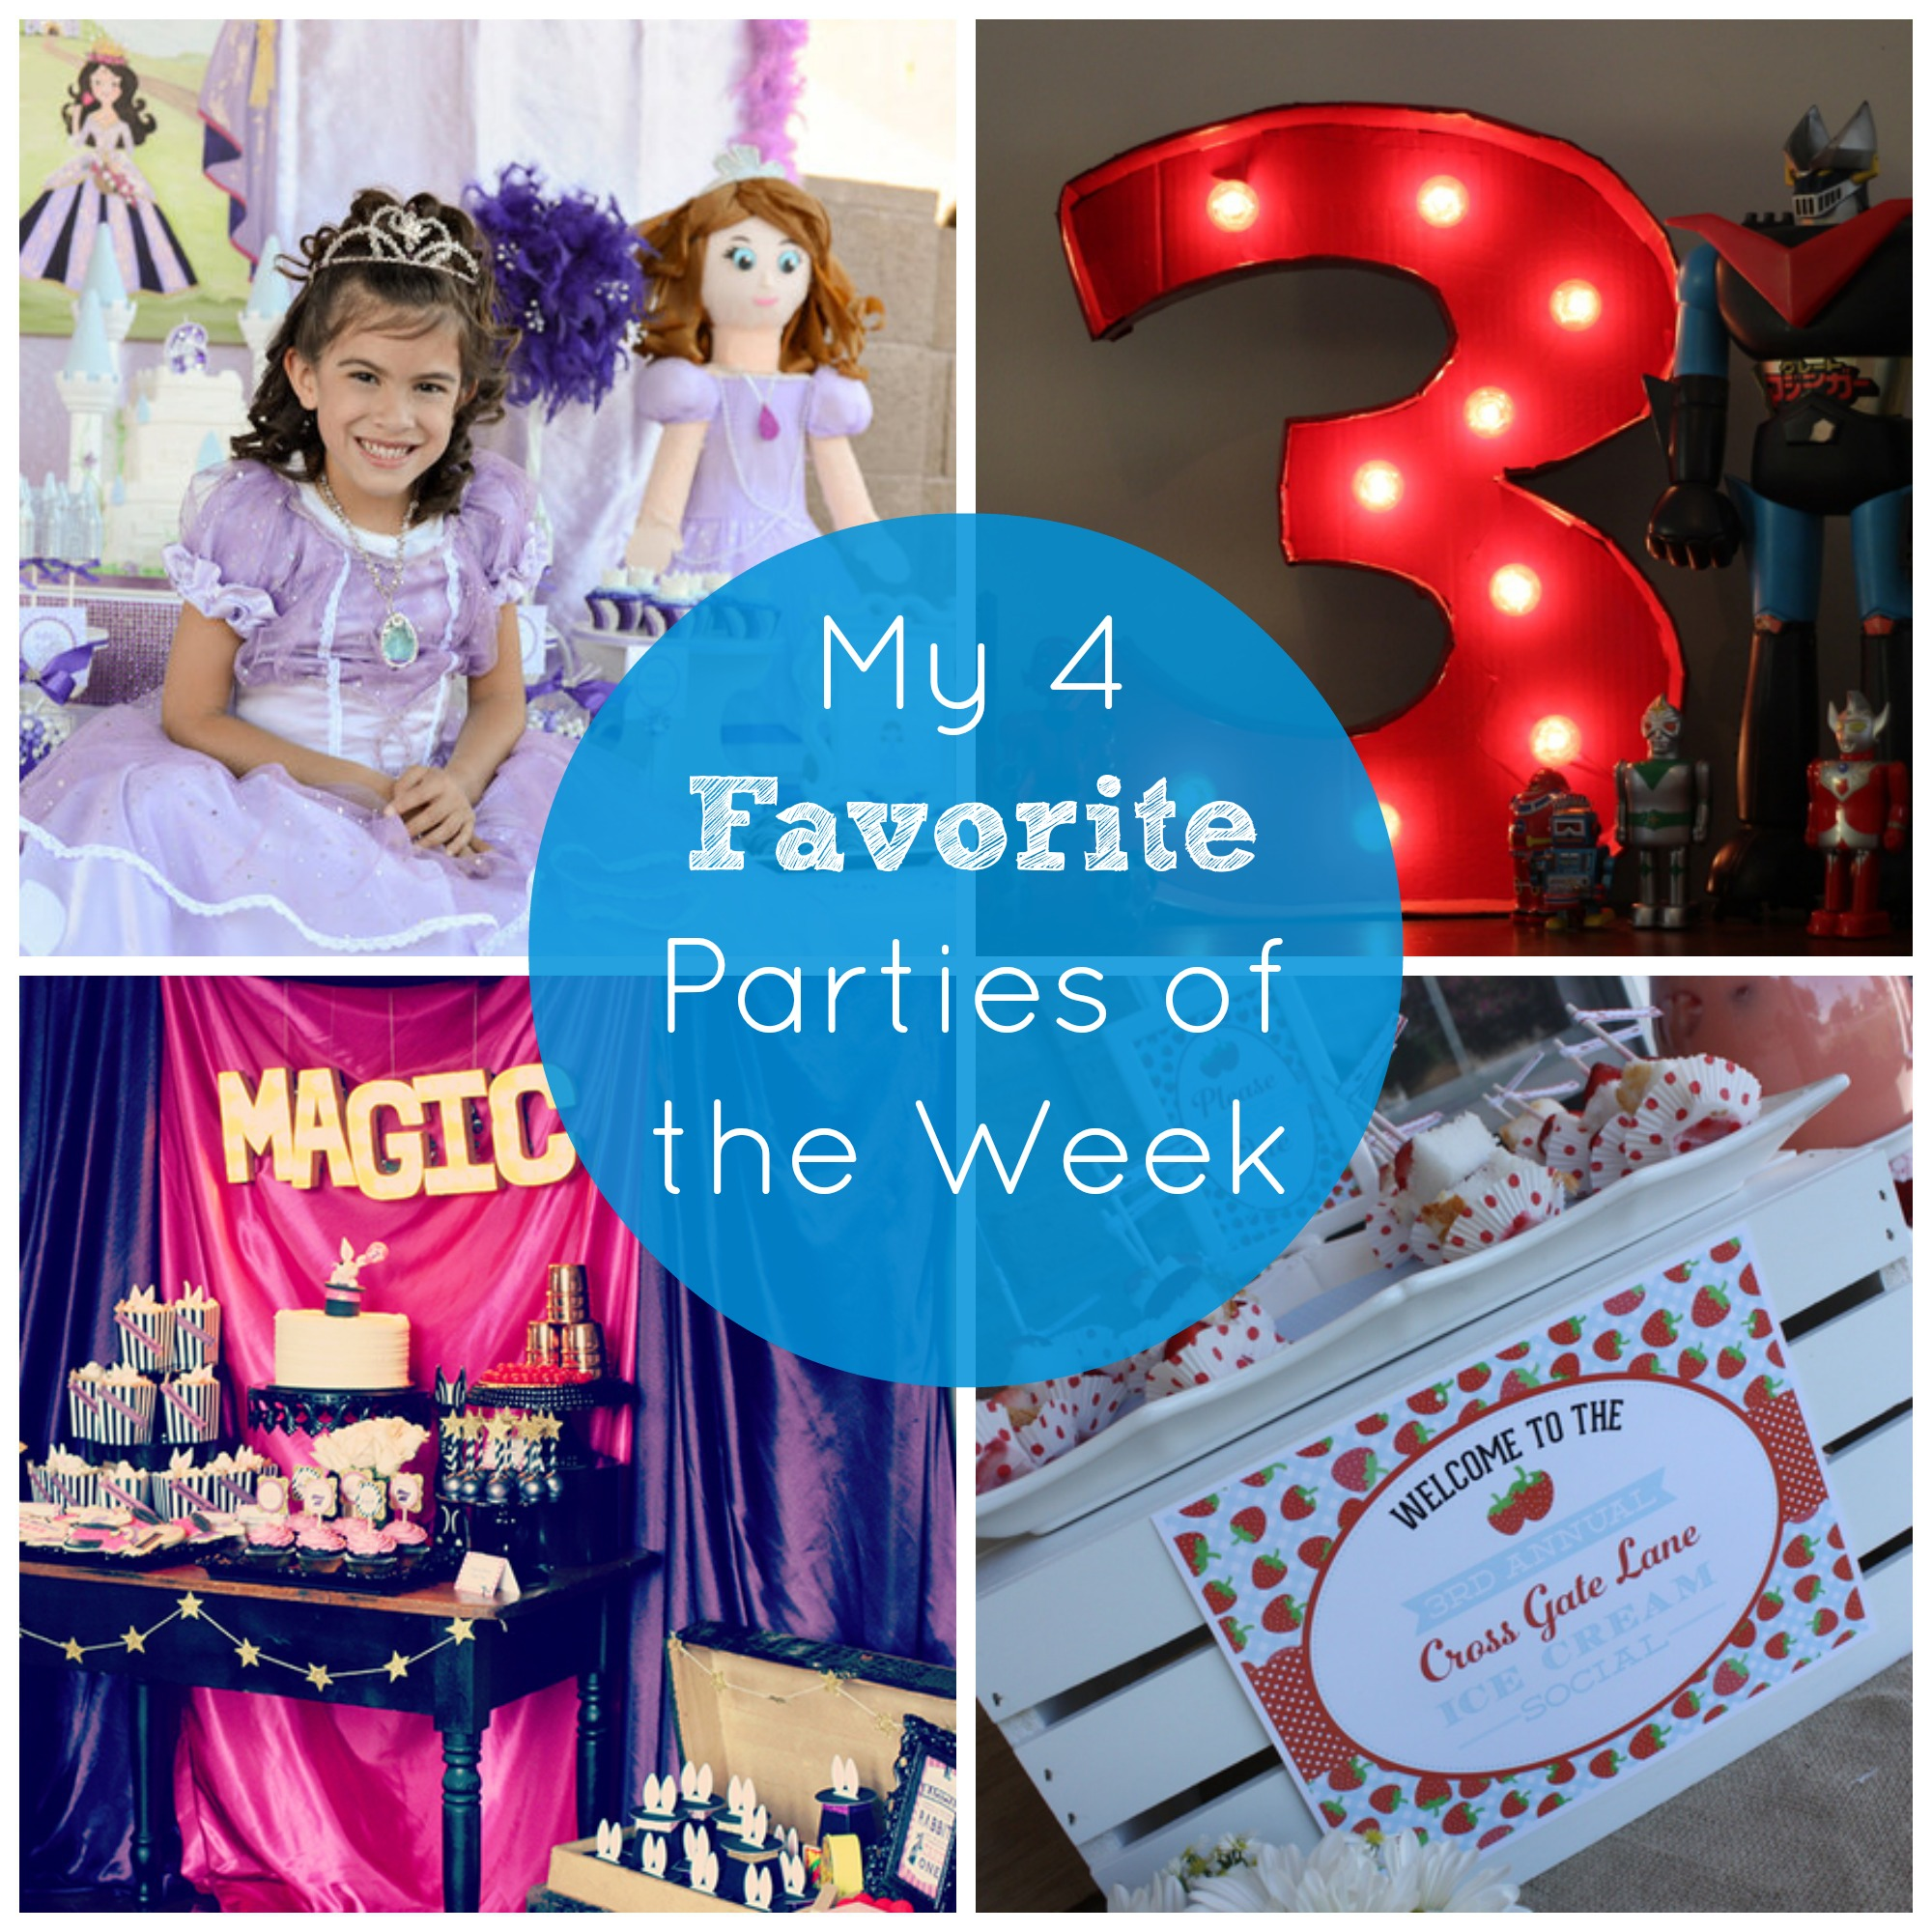 The Catch My Party Blog - Page 1 | Catch My Party